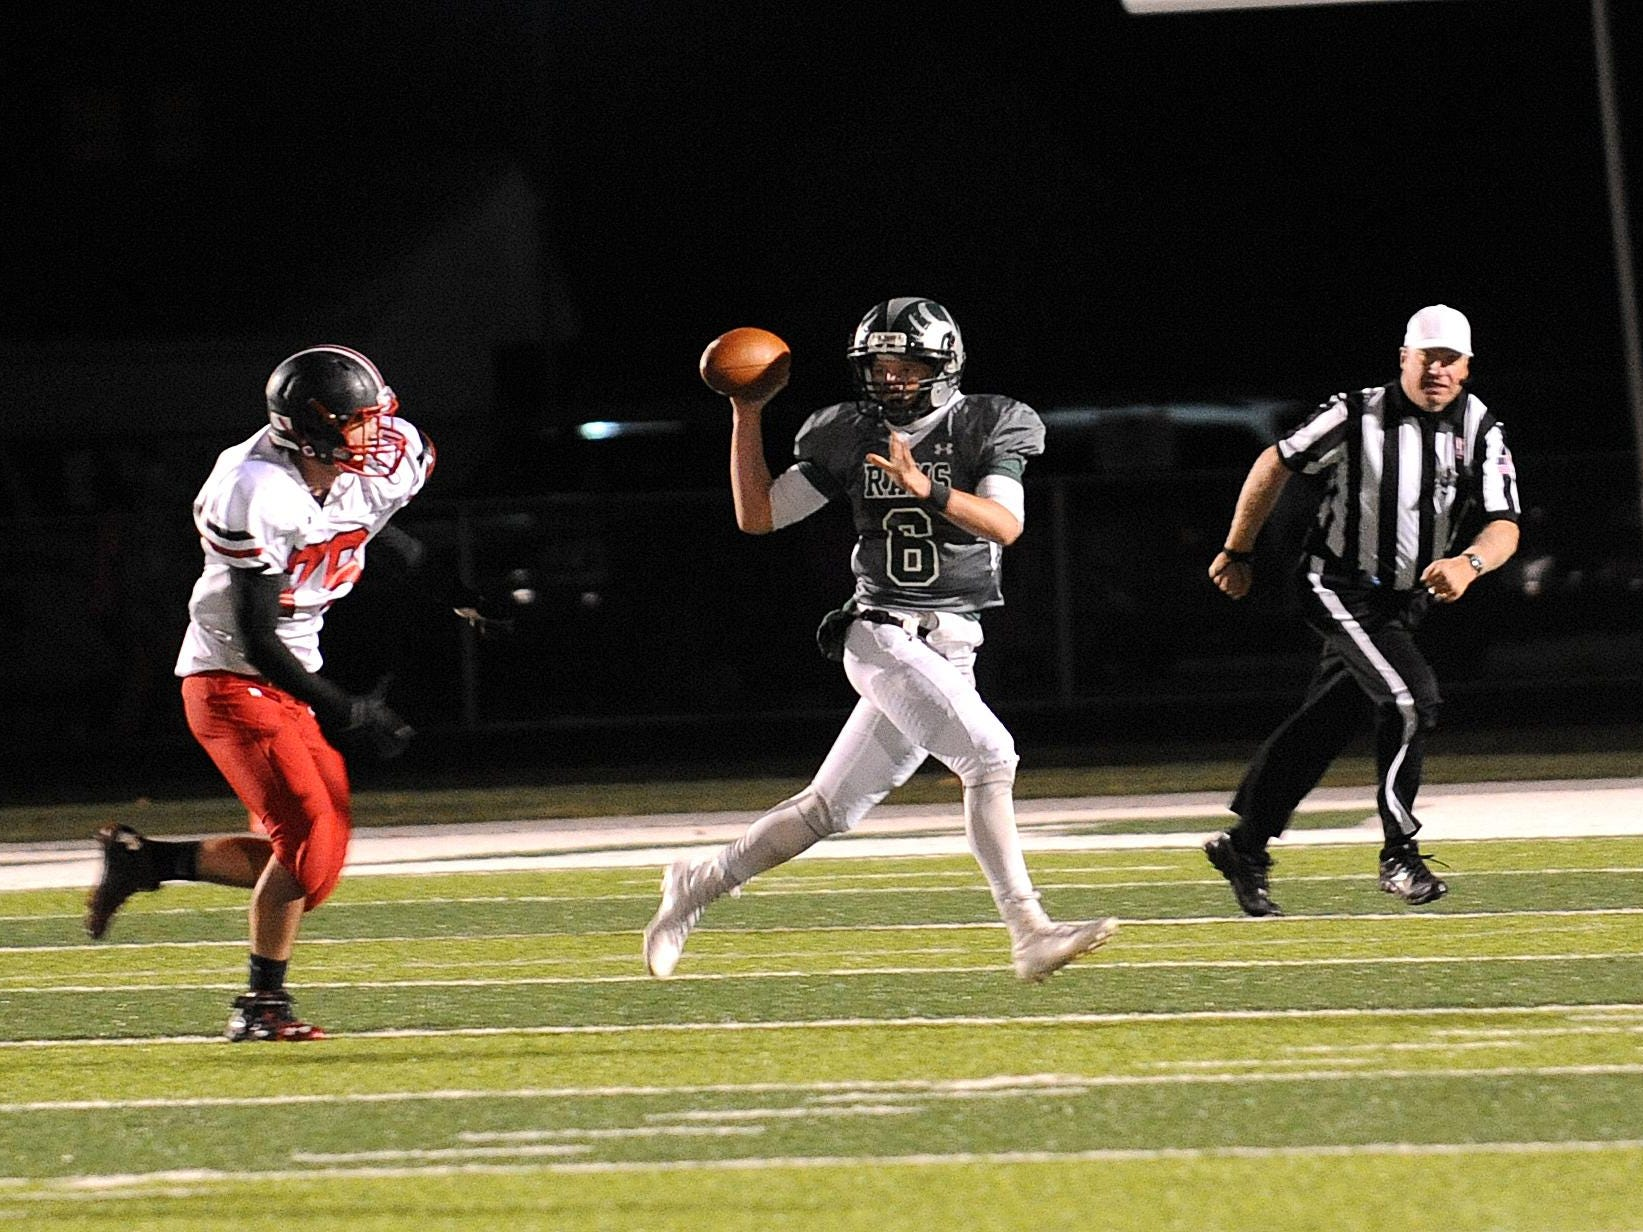 Madison quarterback Tresten Vail attempts a pass against Orrville last week. The Rams travel to Ashland Friday night in a must-win game to stay in the hunt for an Ohio Cardinal Conference championship.